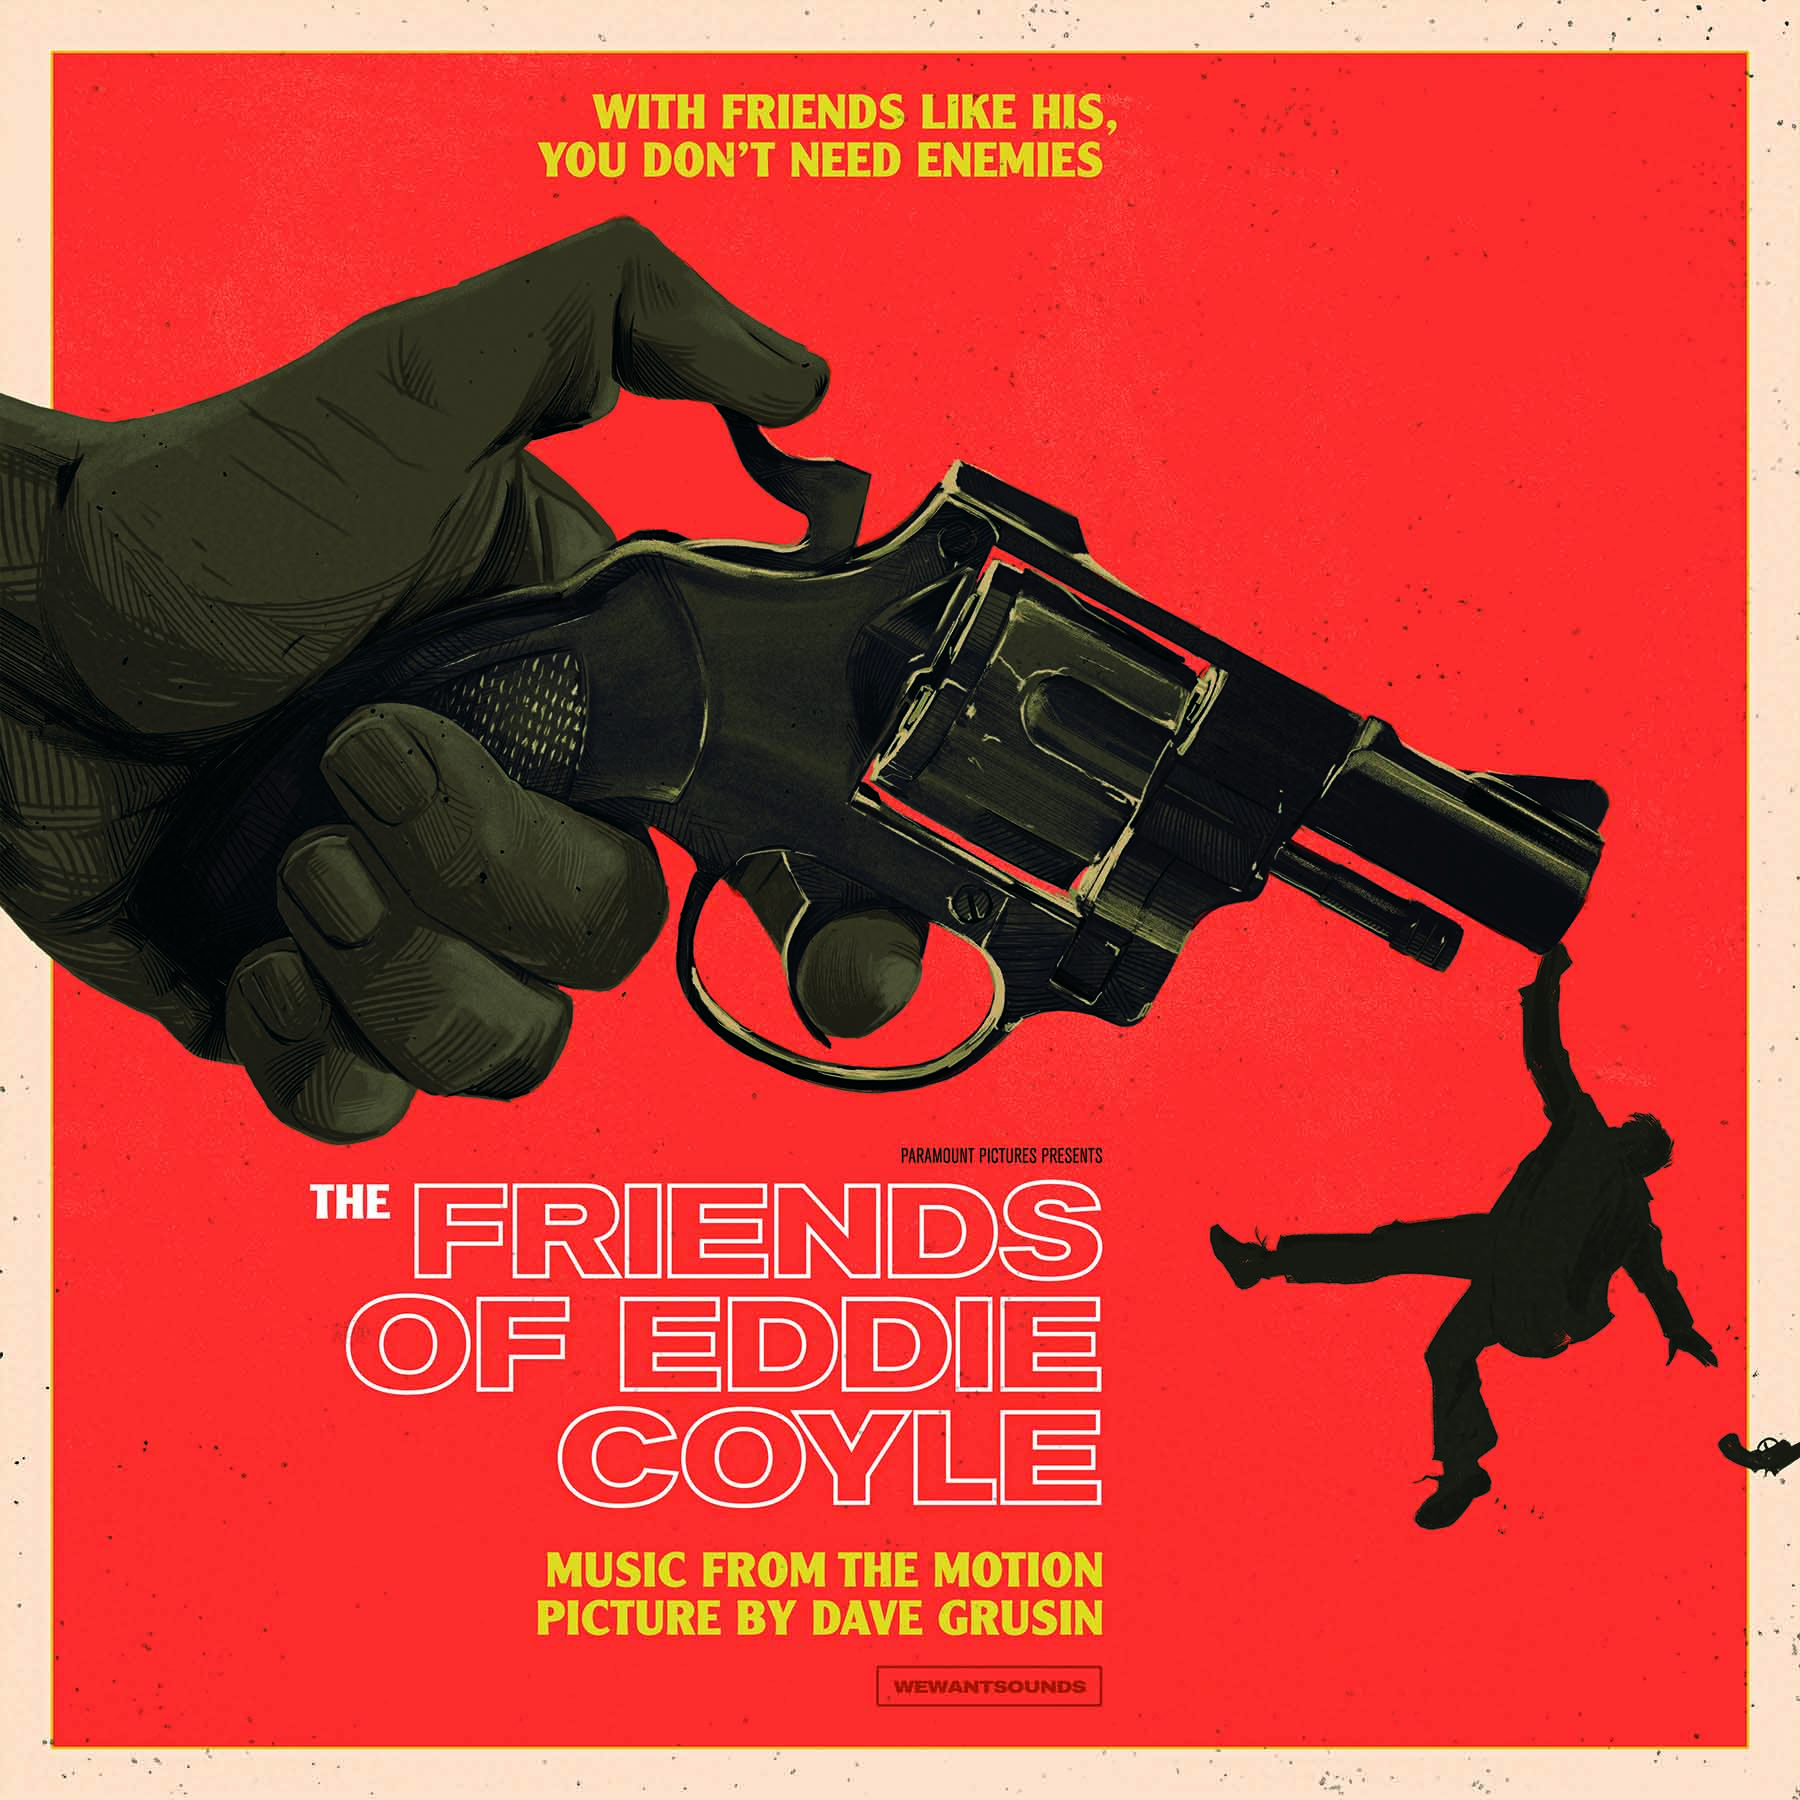 007_DAVE GRUSIN	THE FRIENDS OF EDDIE COYLE (OST)